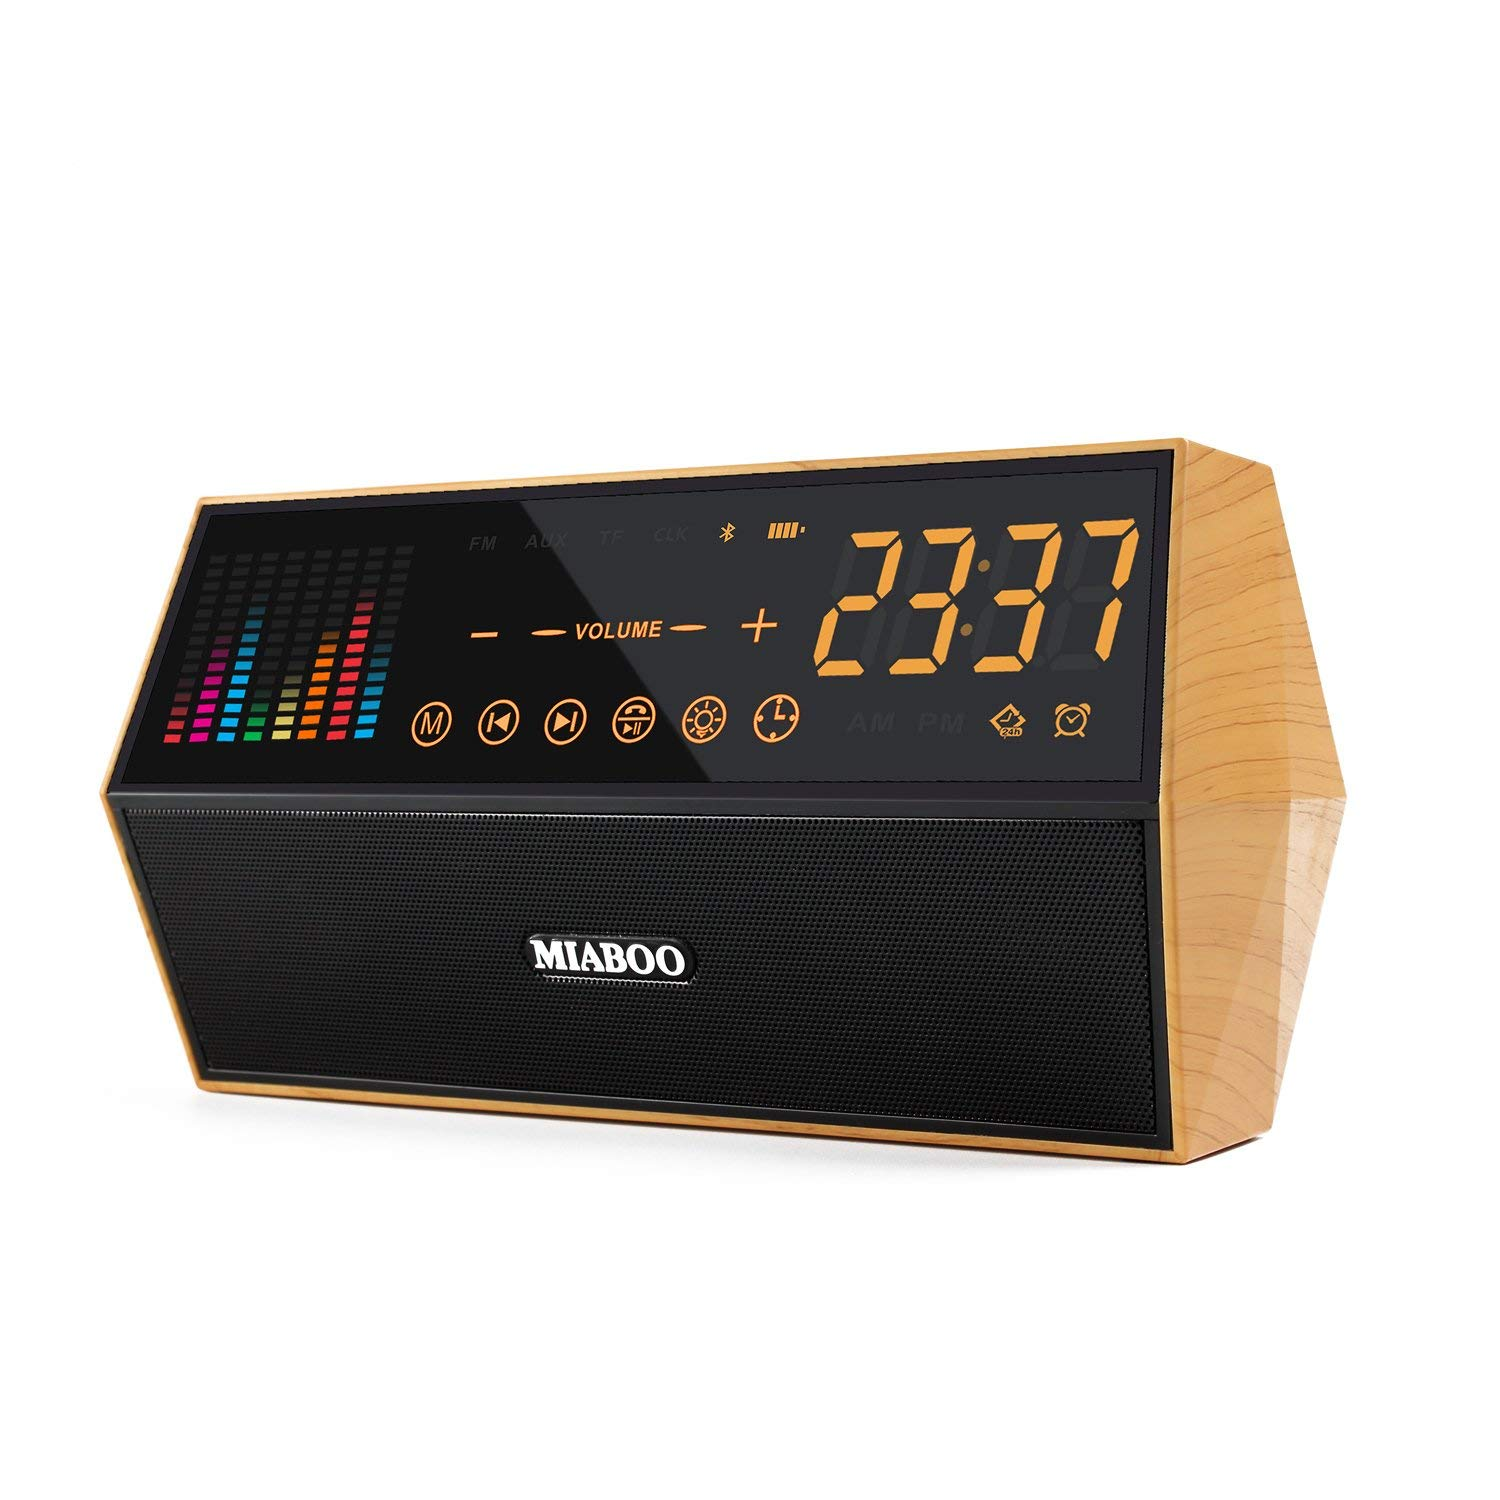 8056f87f4c8c Get Quotations · Miaboo FM Radio Smart Clock Bluetooth Capacitive Sensing  Touch Panel Clock LED Wireless TF Card AUX